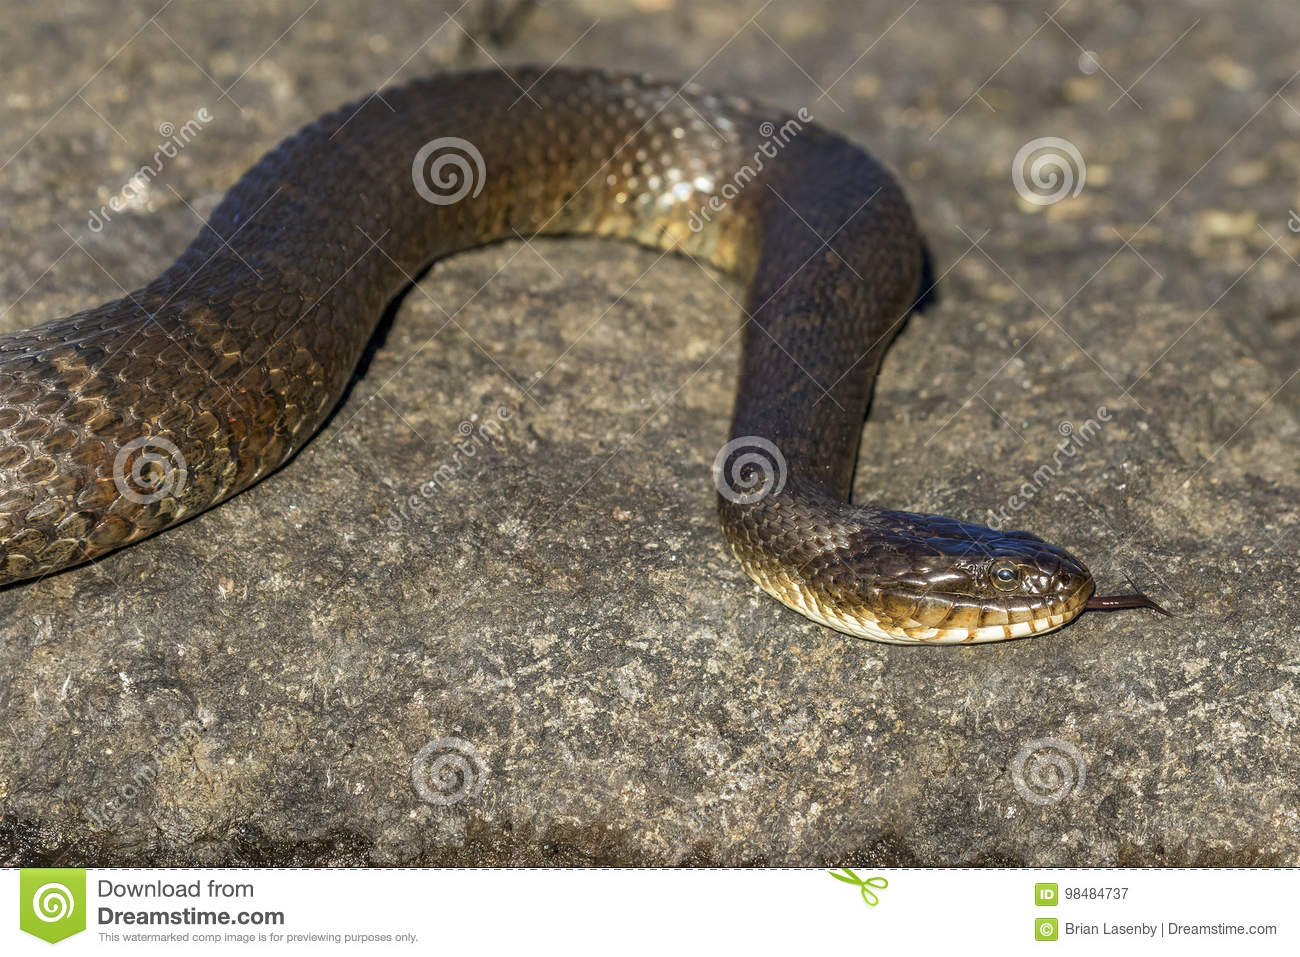 Northern Water Snake Nerodia sipedon sipedon flicking its tong